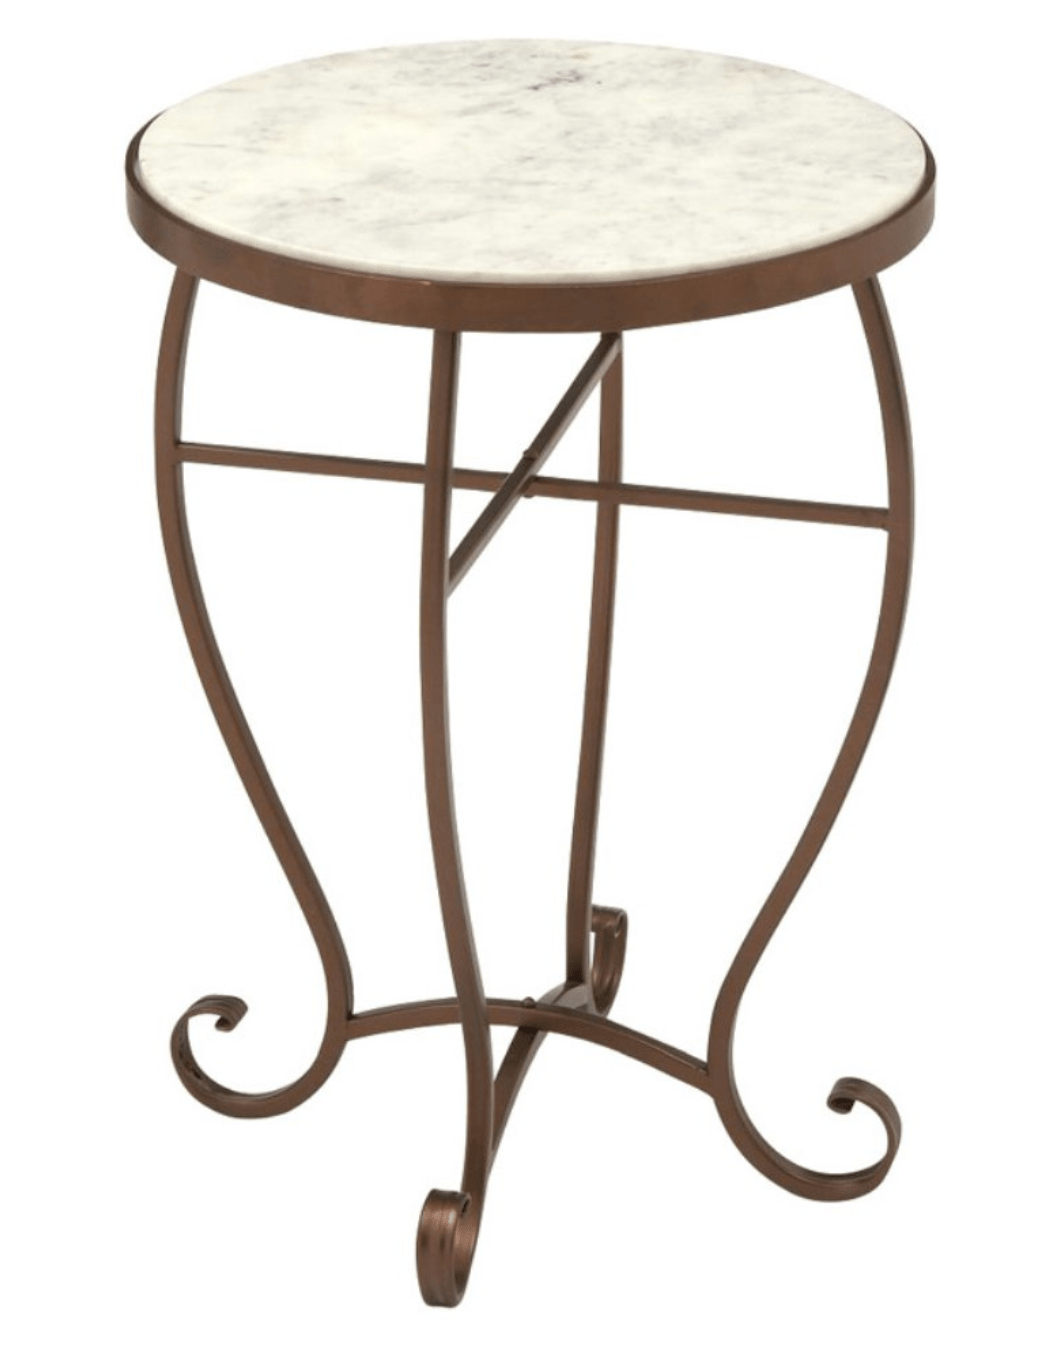 lovely small accent table for compact marble round min top furniture nearby wrought iron outdoor tables occasional and chairs torchiere floor lamp white counter height set patio